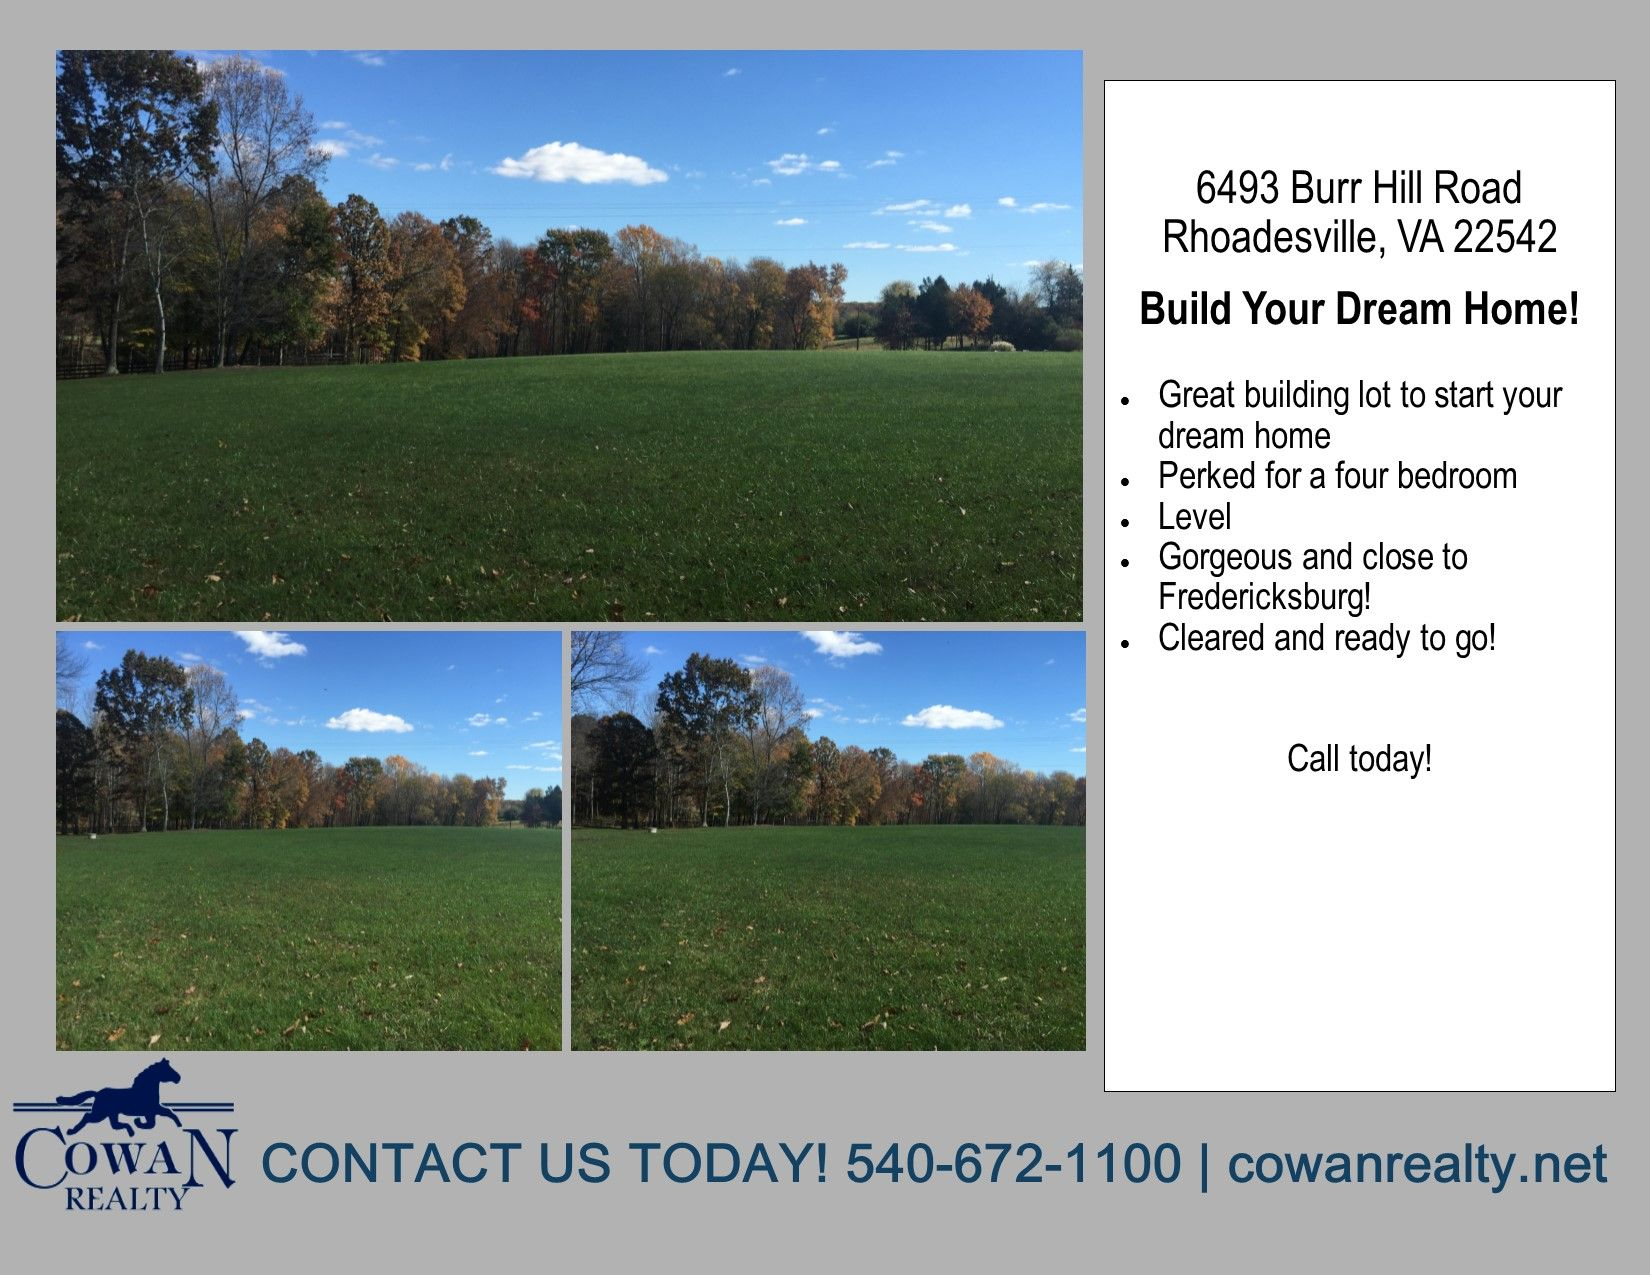 Beautiful Lot Perked For A Four Bedroom Level Planted In Grass